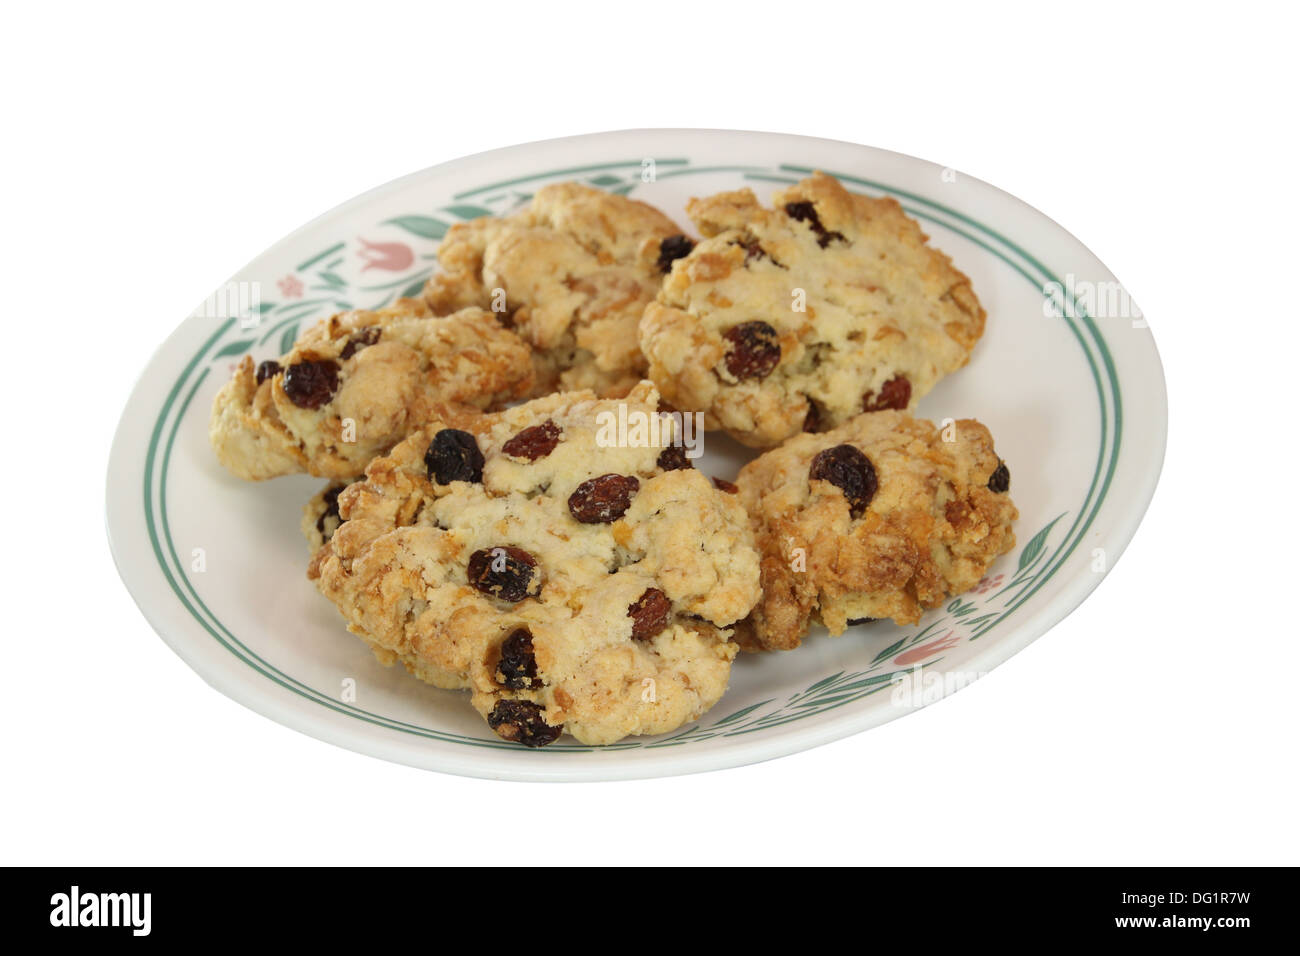 Home Made Cookies - Stock Image